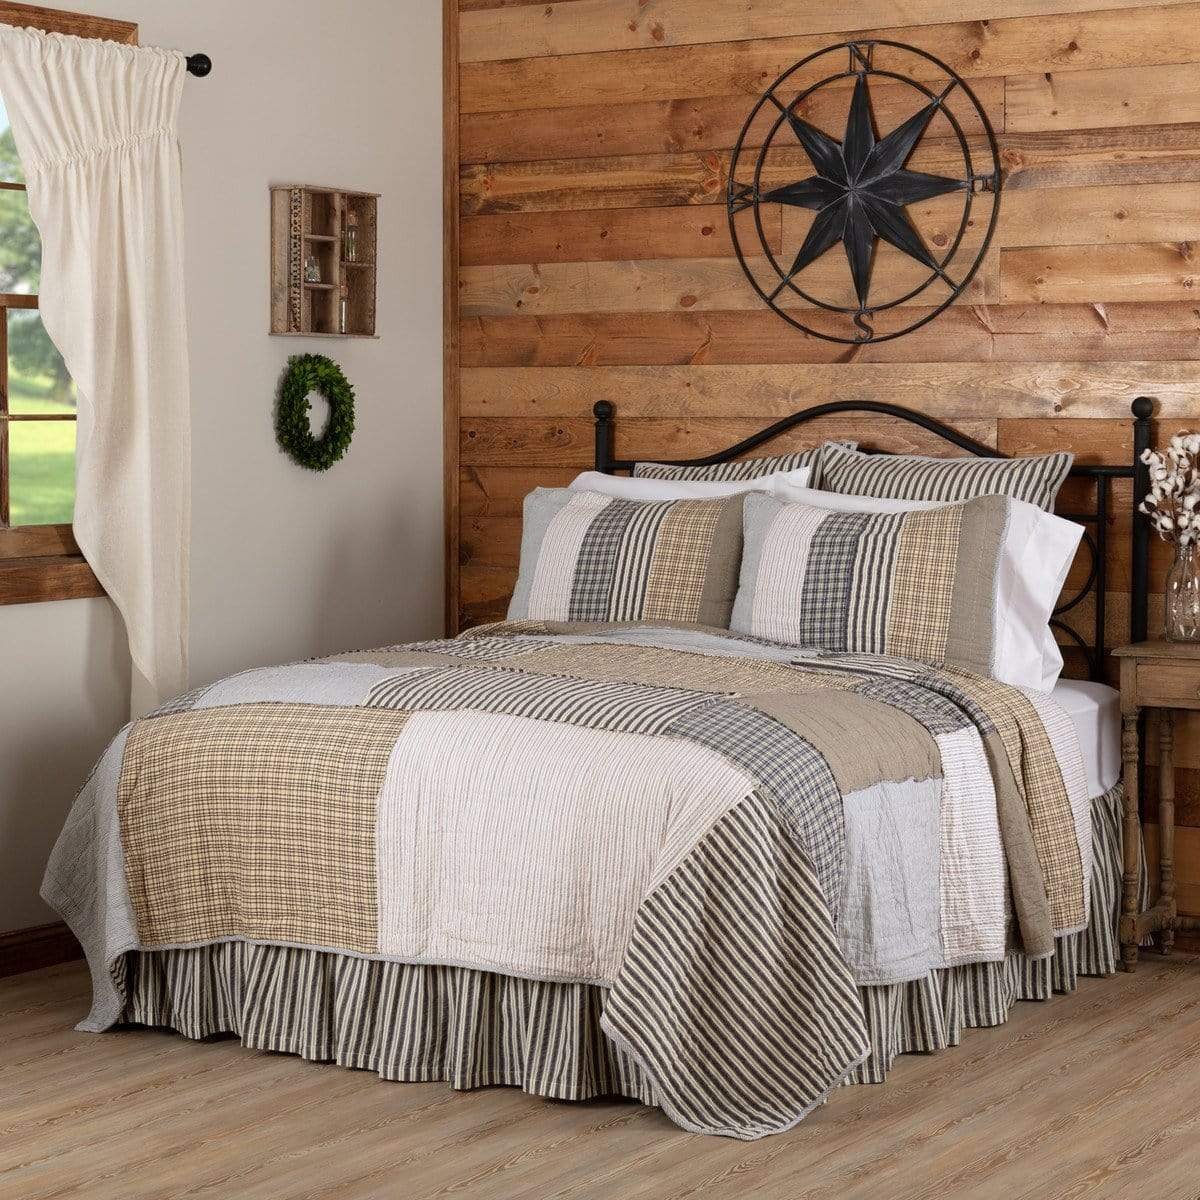 Modern Farmhouse Bedding Retro Barn Country Linens